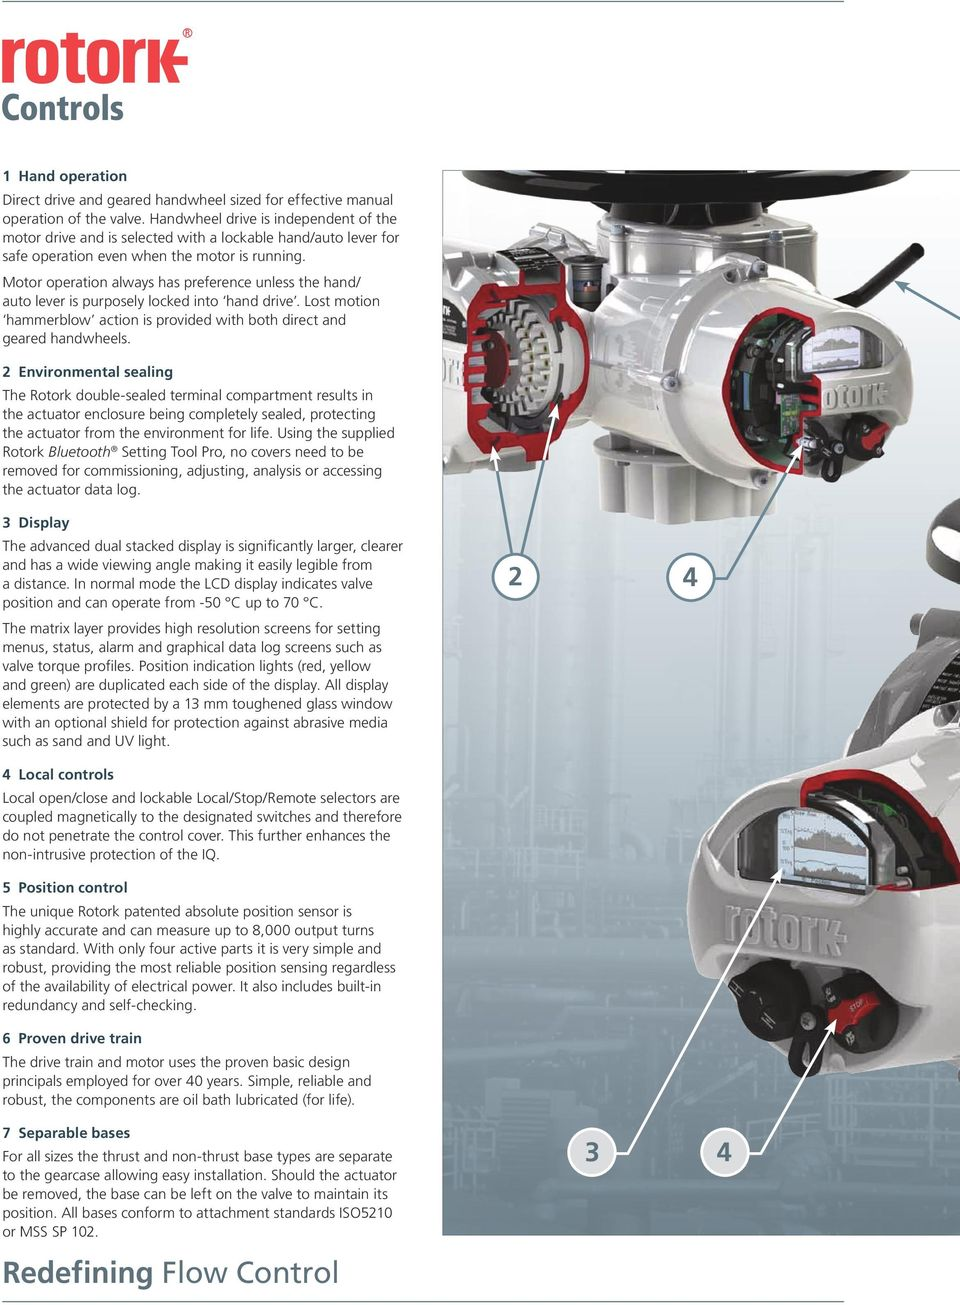 Motor operation always has preference unless the hand/ auto lever is purposely locked into hand drive. Lost motion hammerblow action is provided with both direct and geared handwheels.